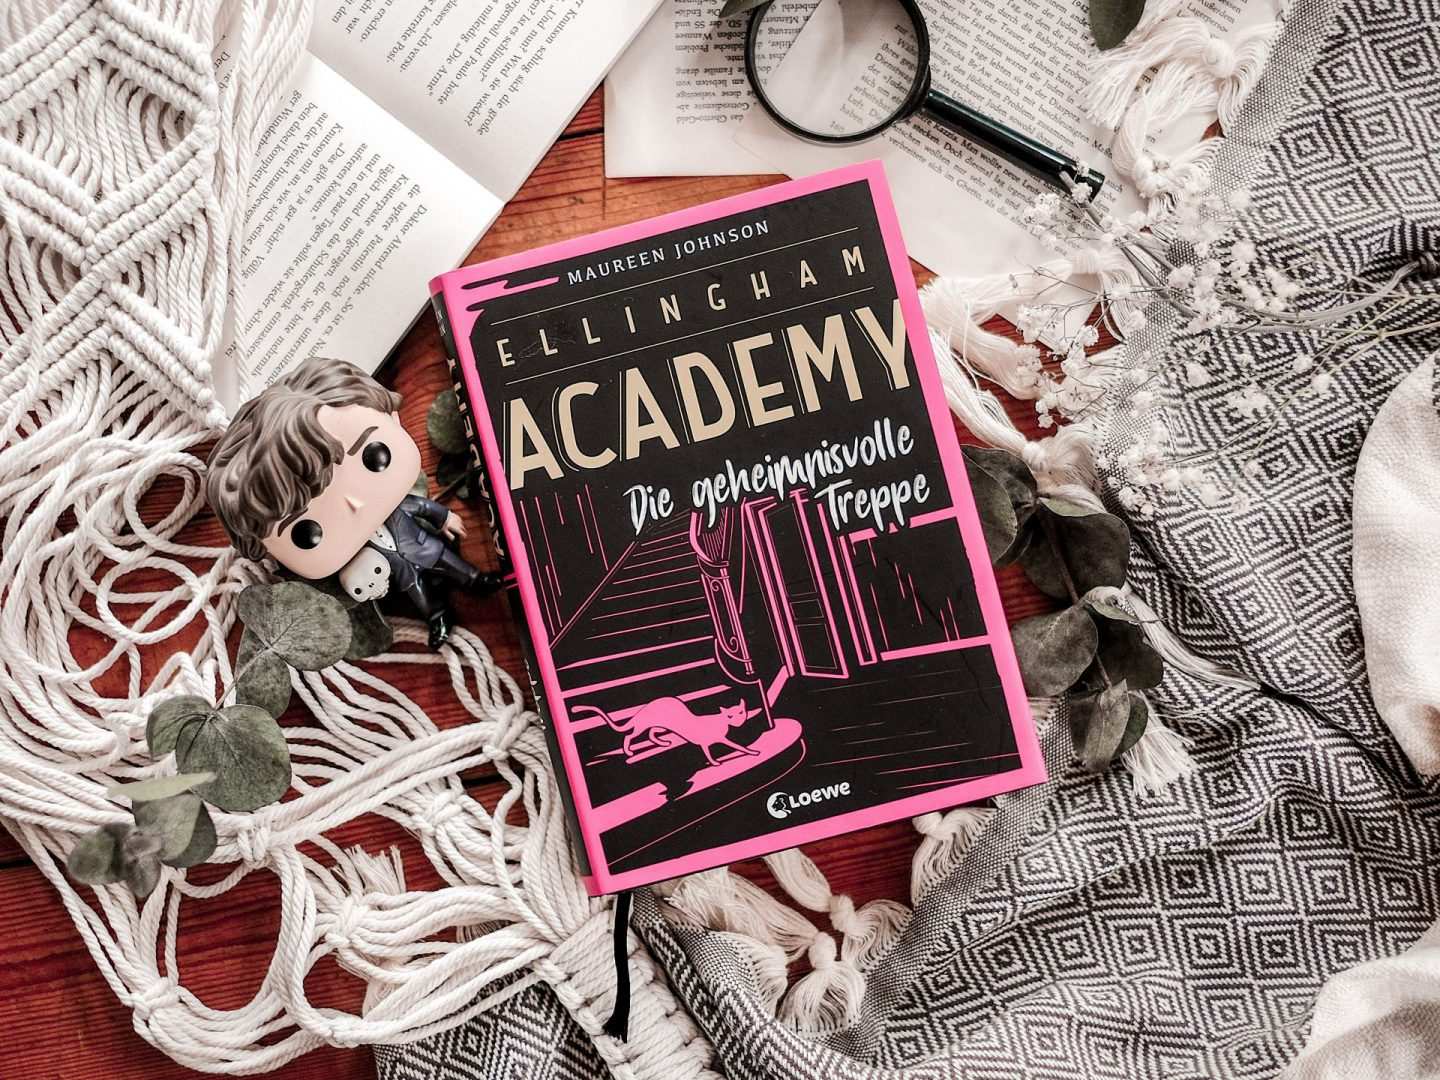 Rezension Maureen Johnson – Ellingham Academy: Die geheimnisvolle Treppe